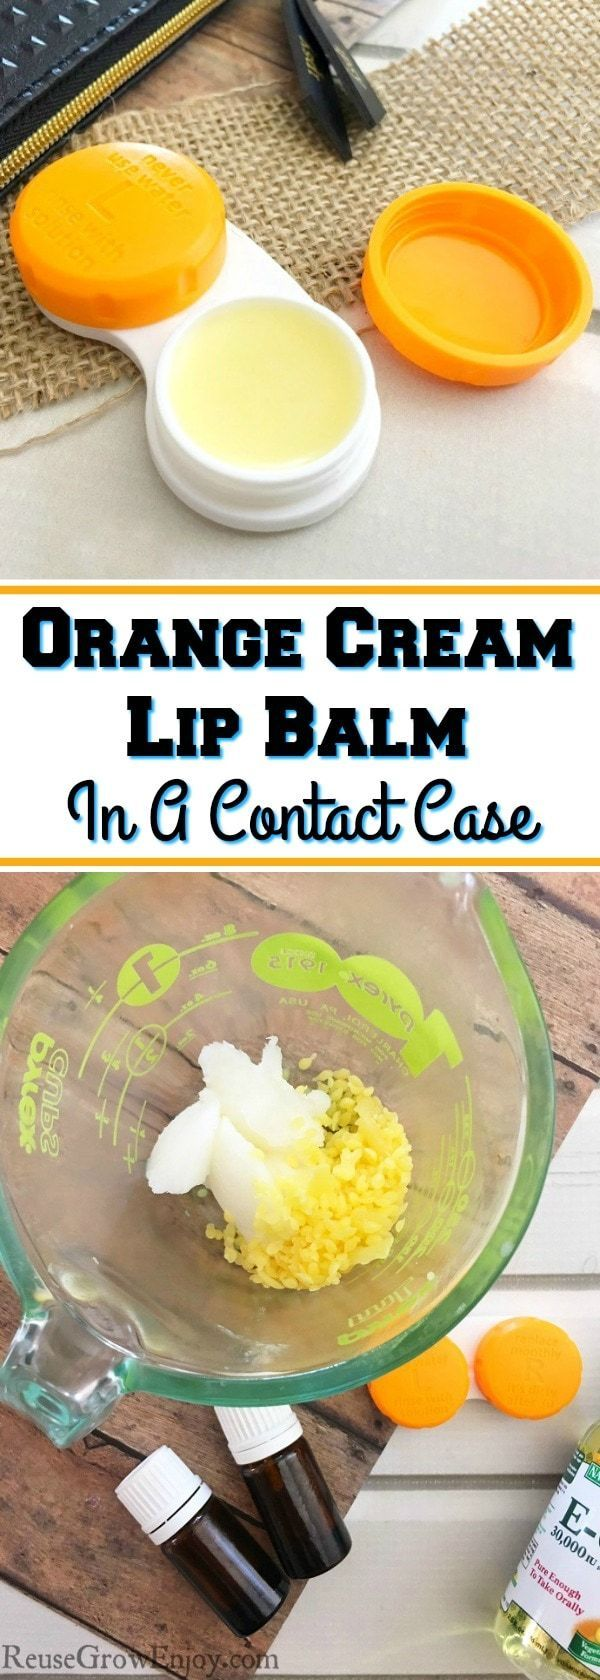 One great way to reuse extra contact cases is for lip balm You can